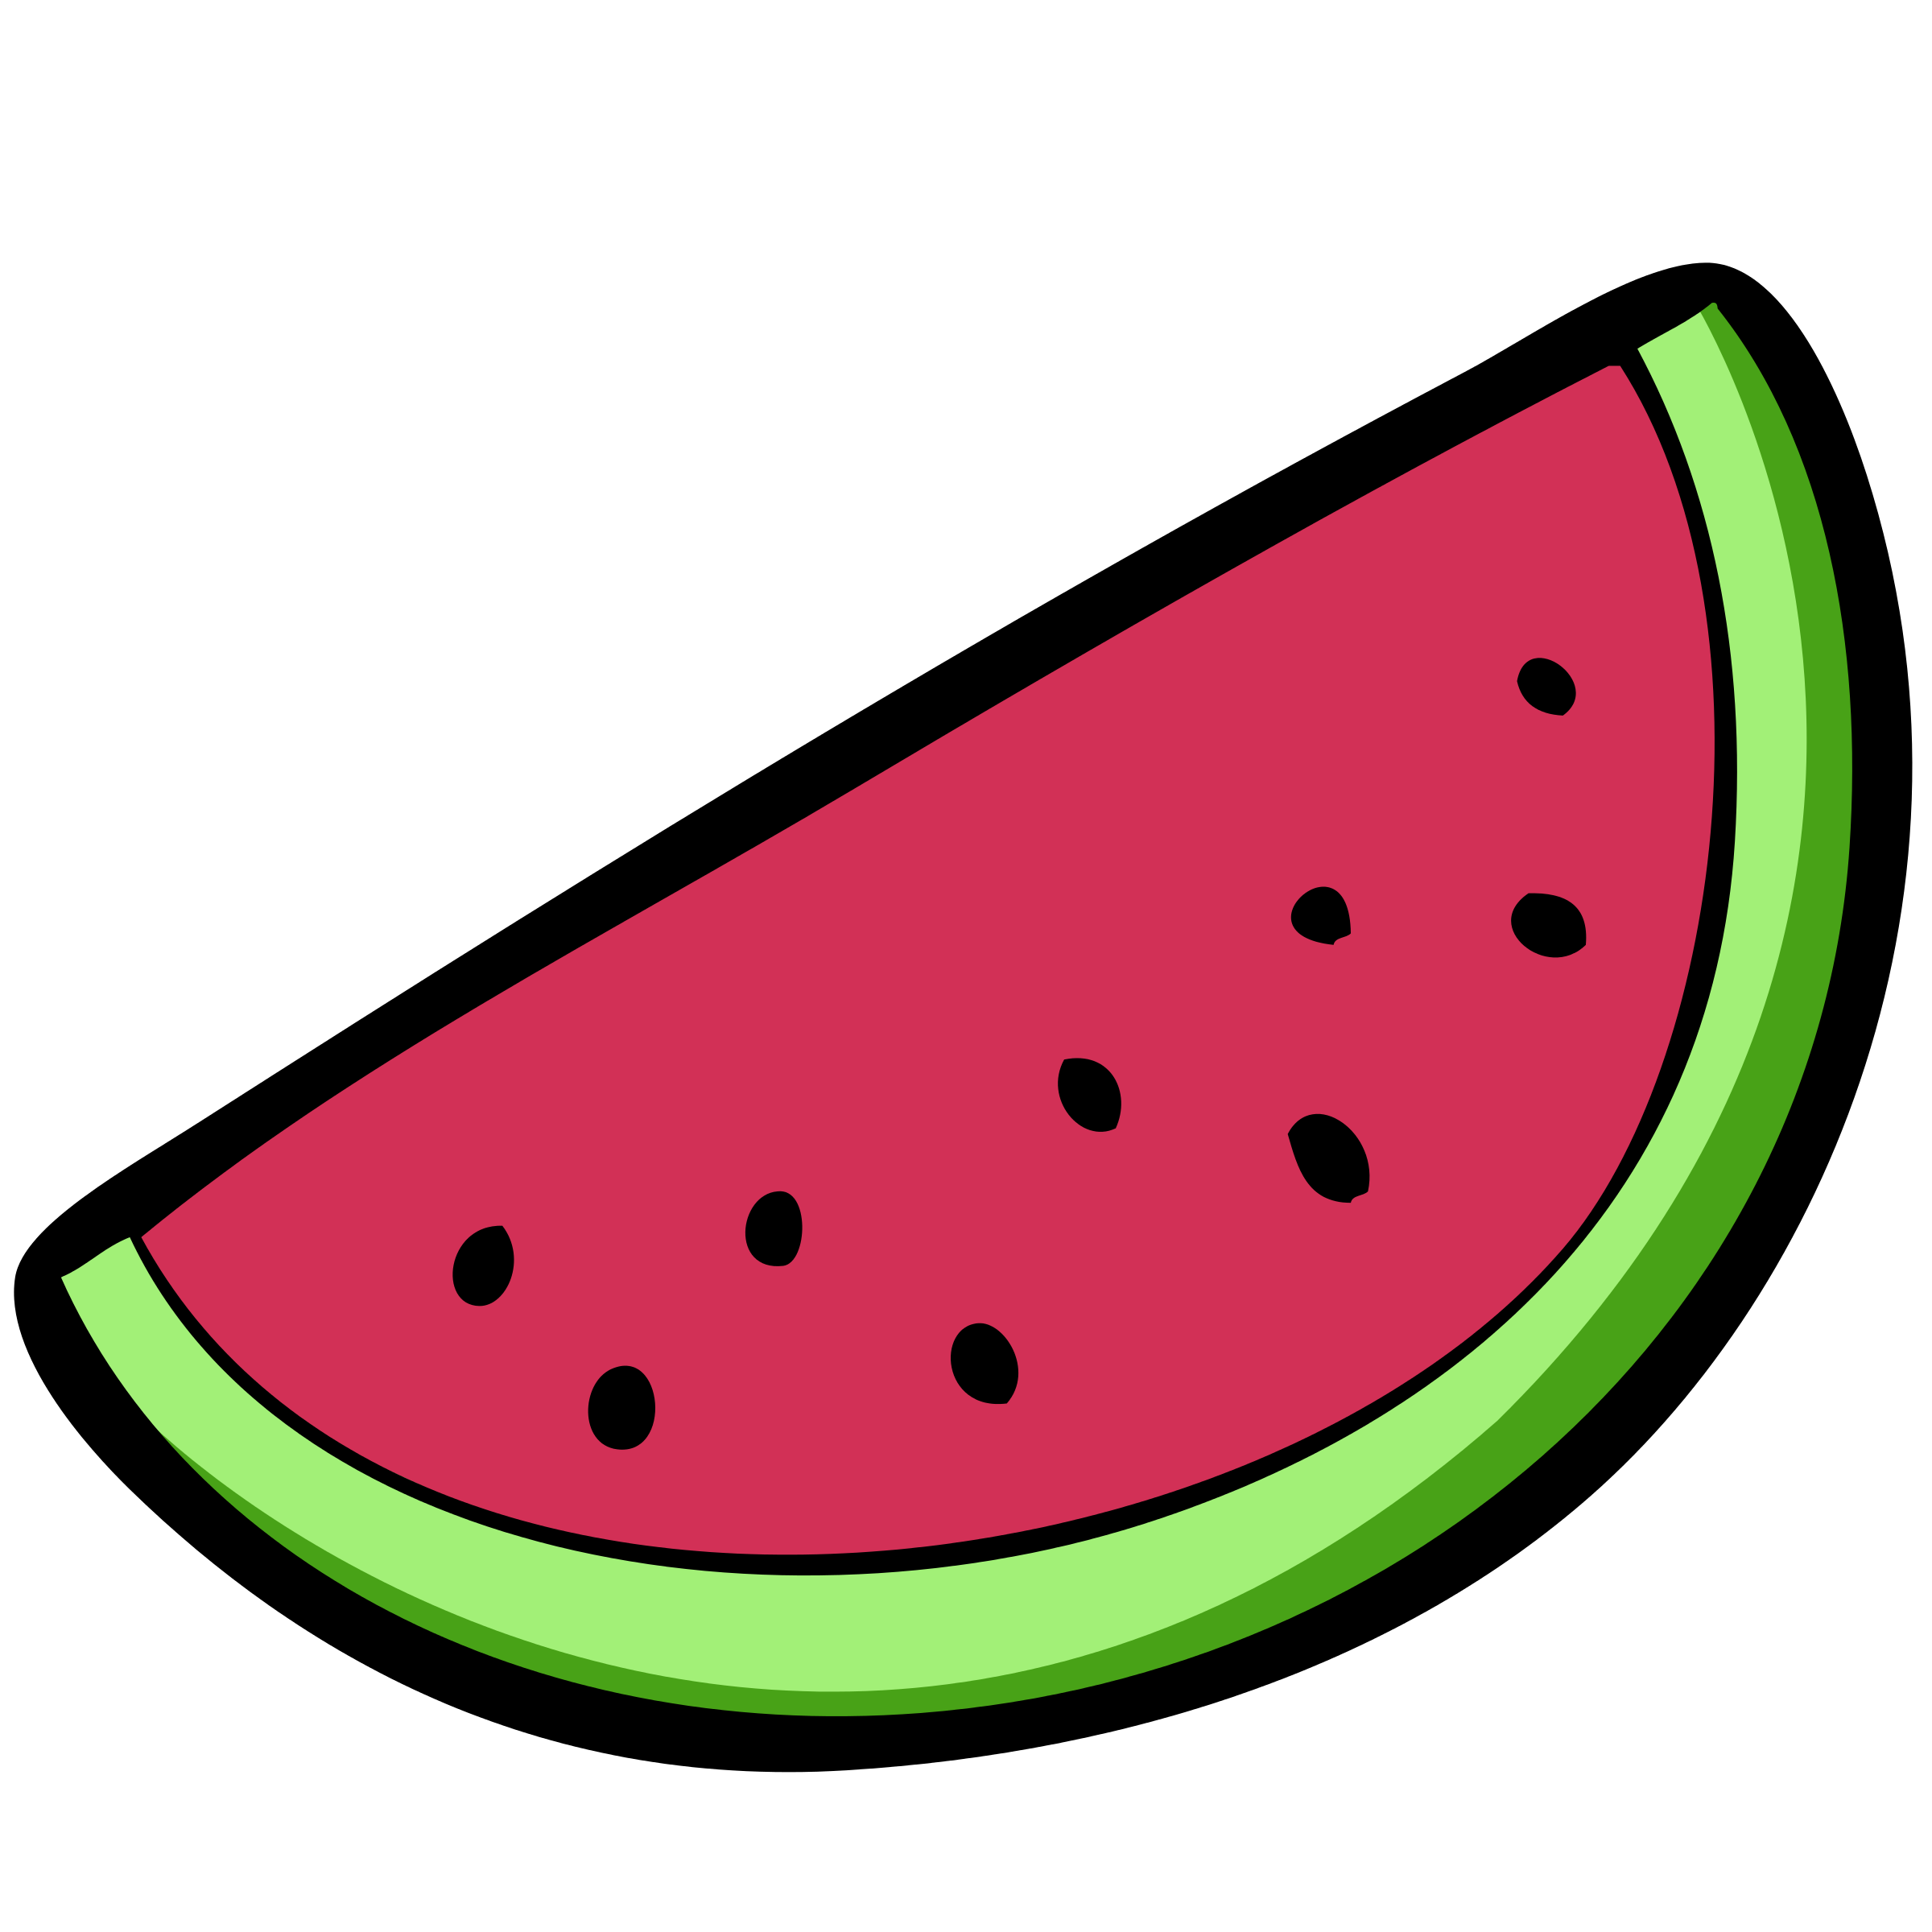 Cucumber clipart animated. Watermelon clip art for